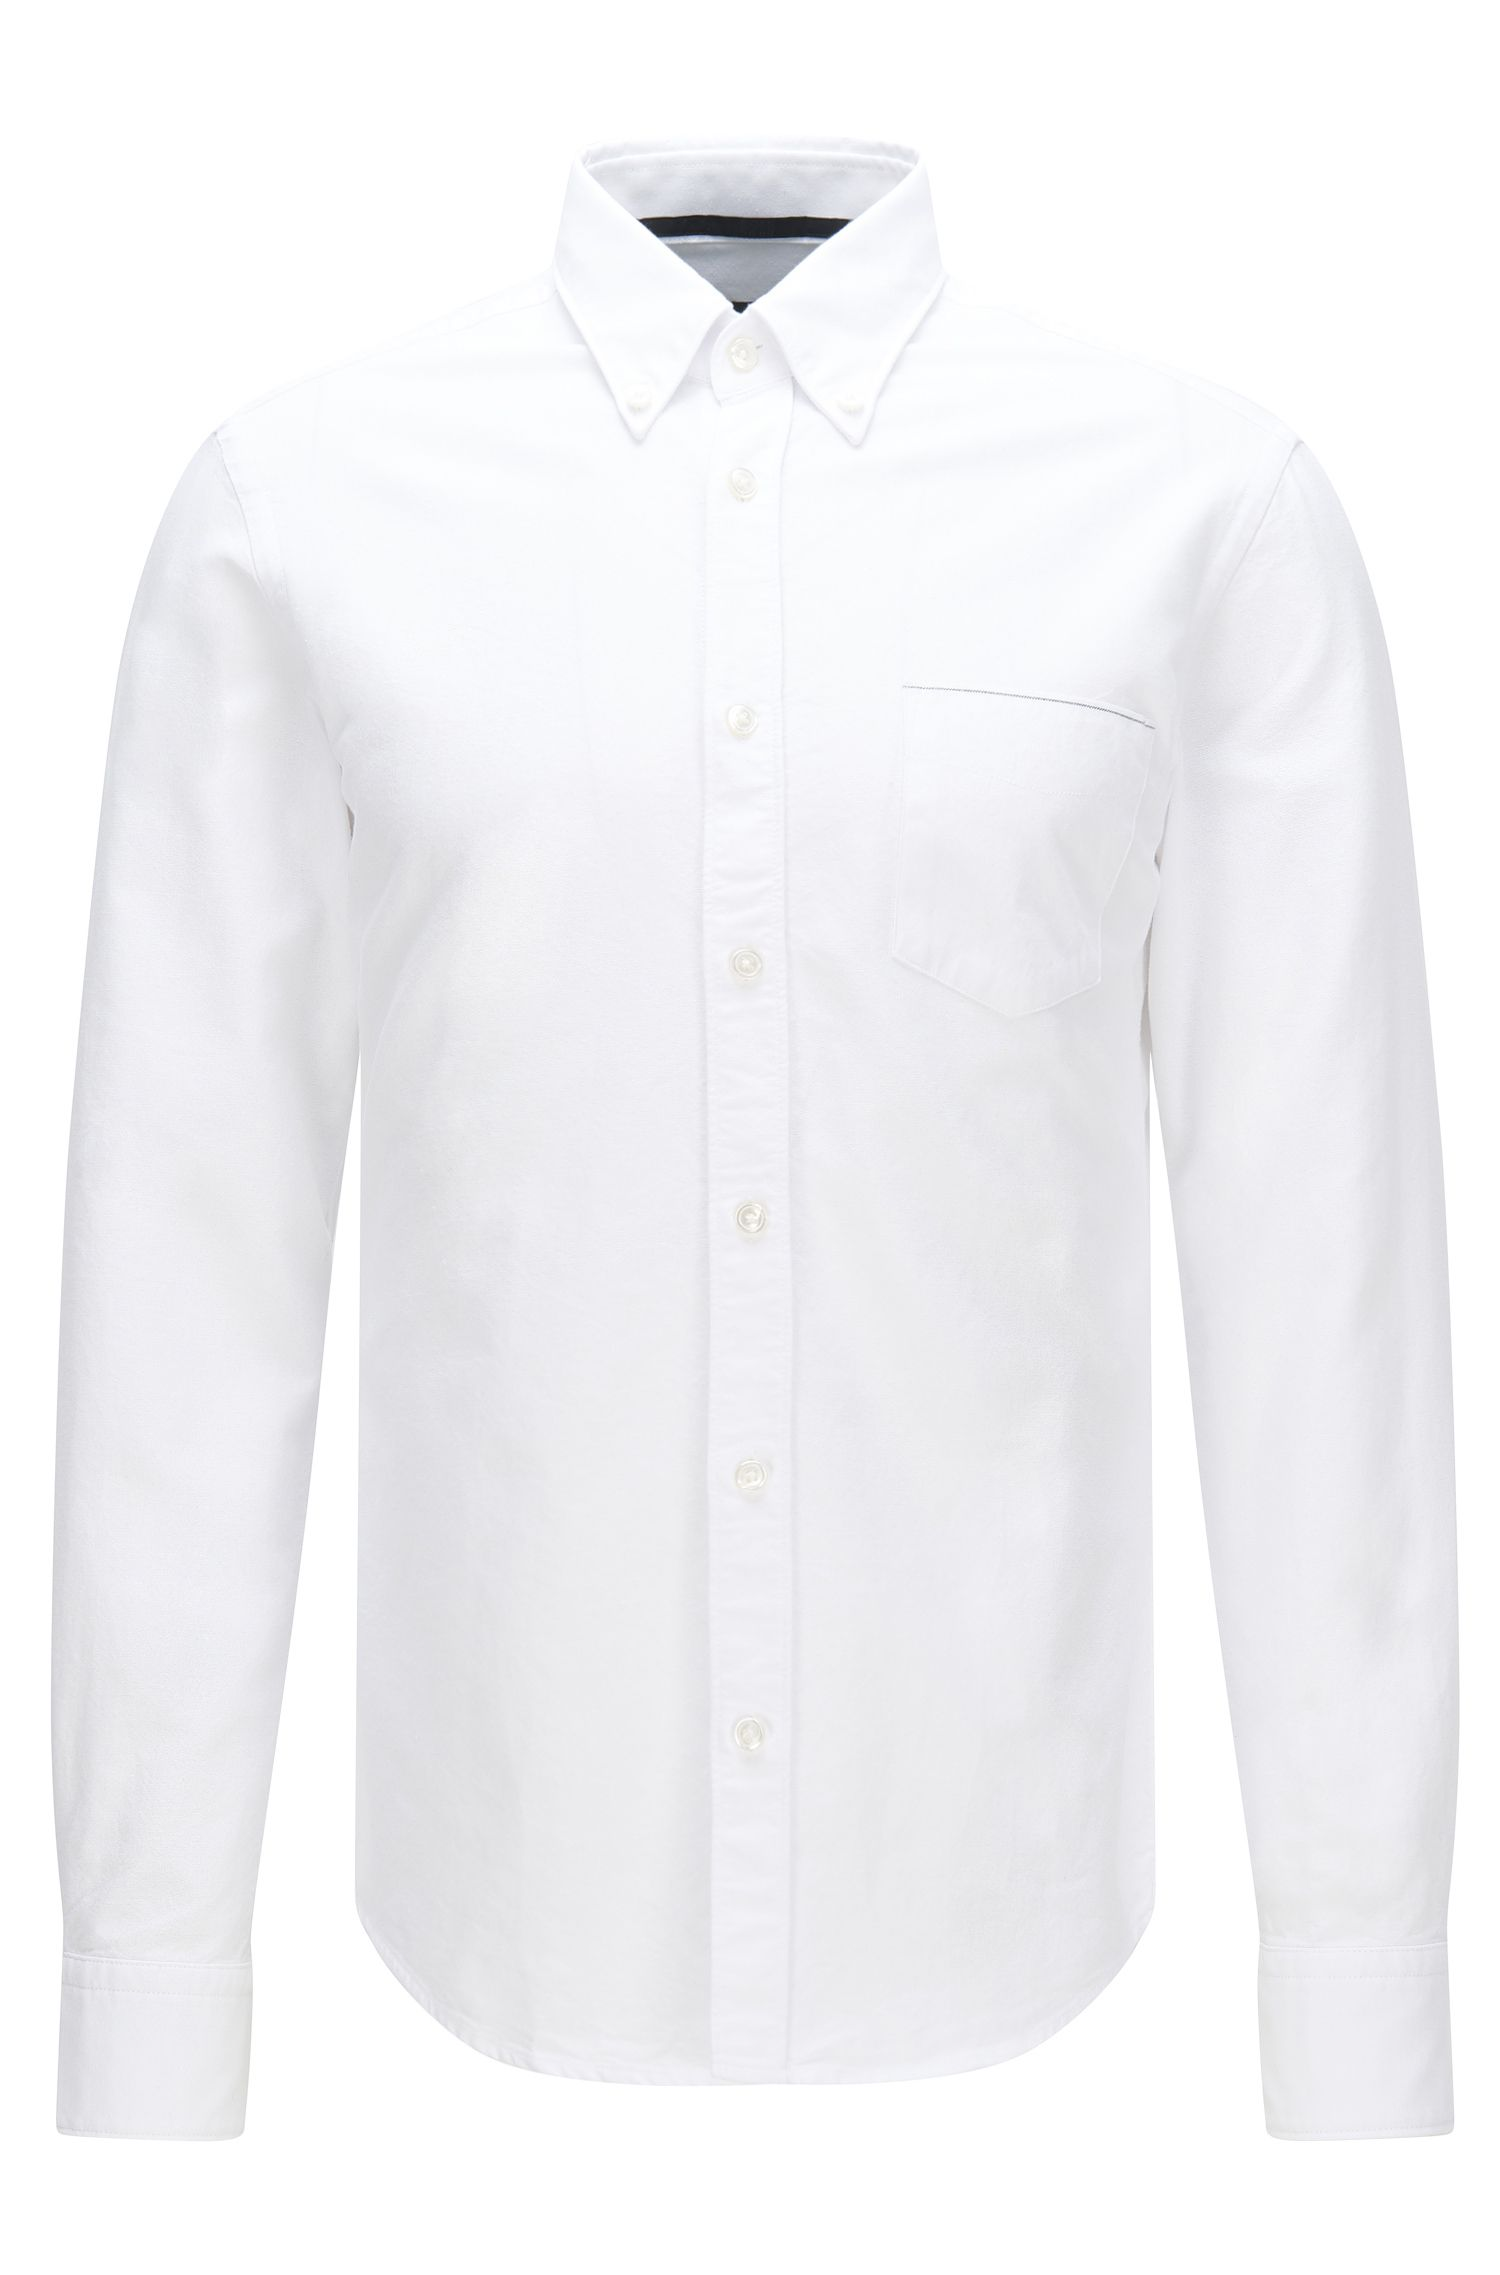 Cotton Oxford Button Down Shirt, Slim Fit | Rubens P